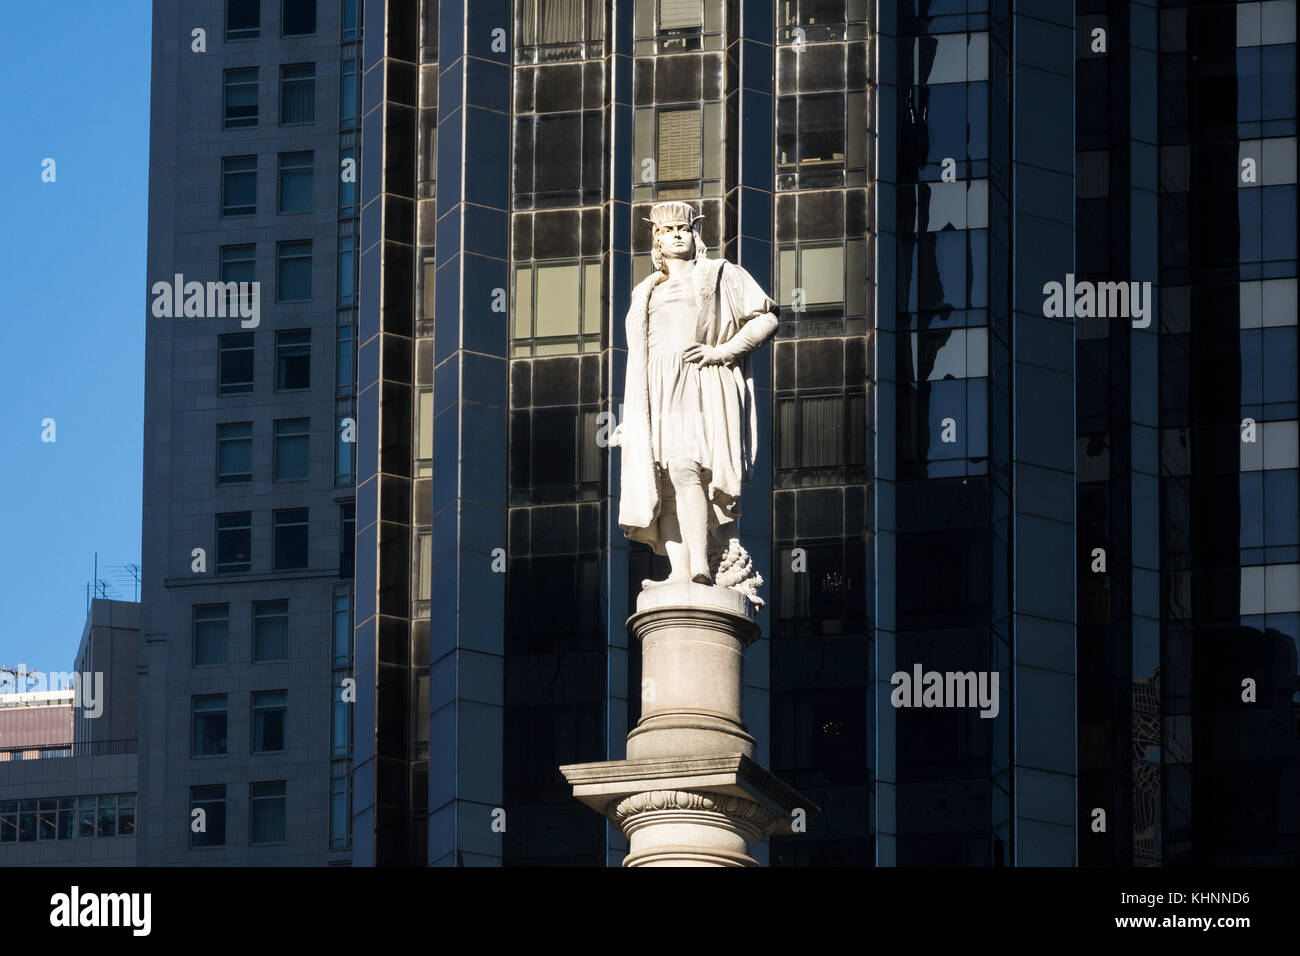 The controversial Christopher Columbus statue in Columbus Circle in New York City Stock Photo